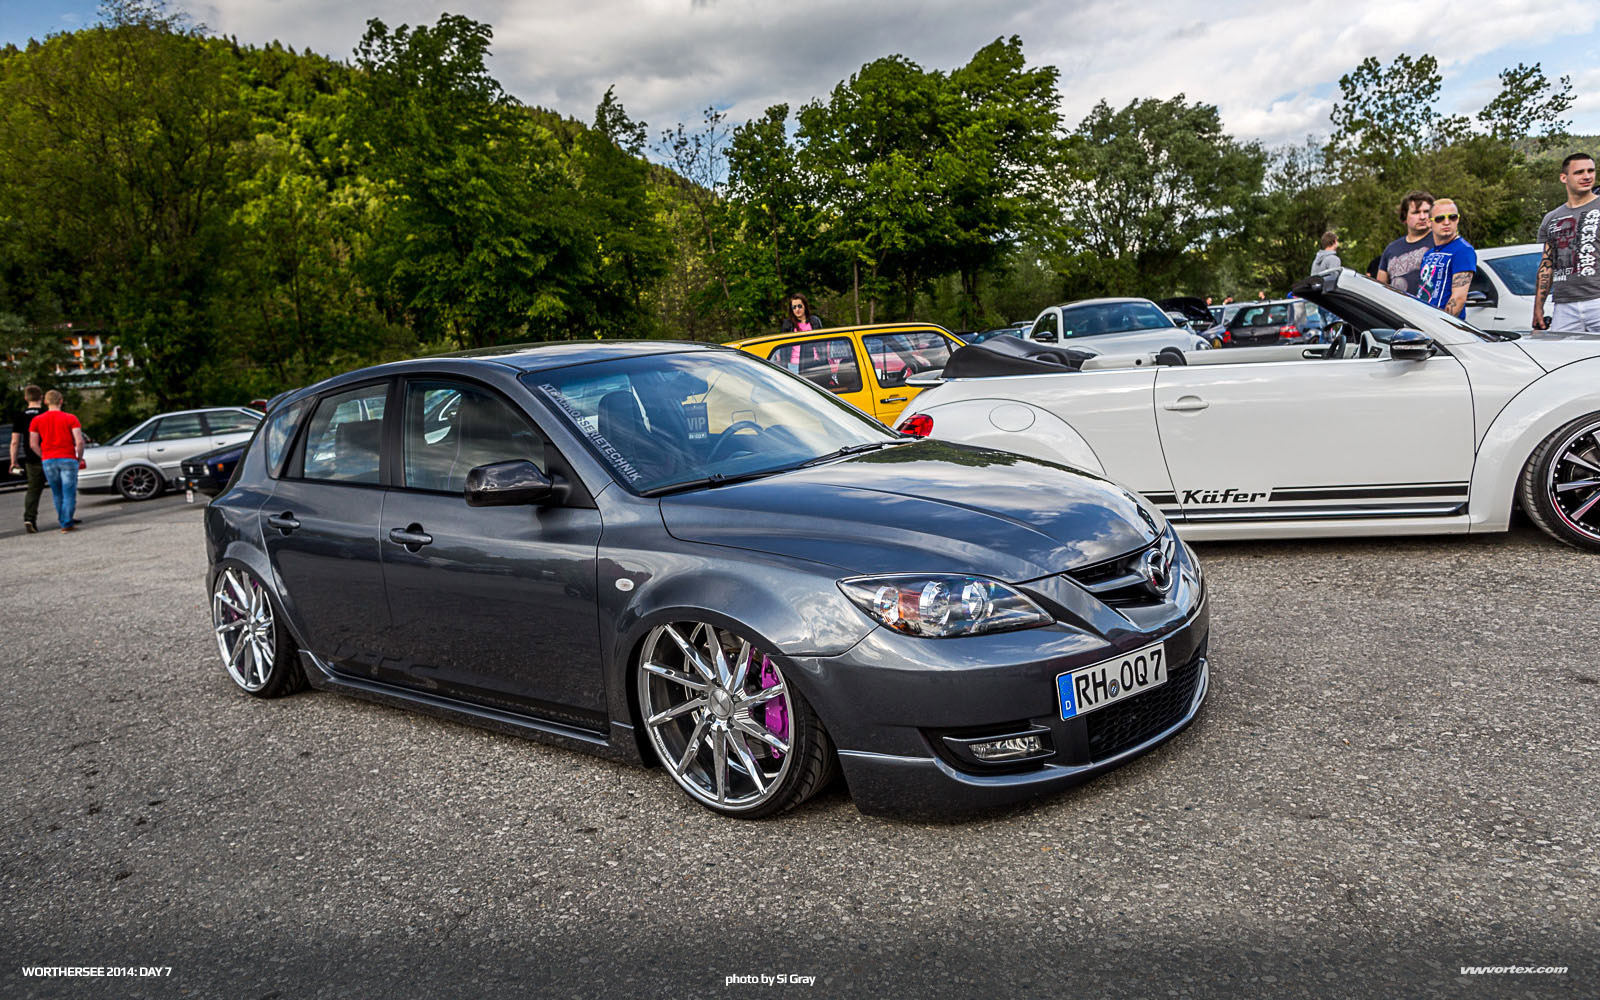 2014-Worthersee-Day-7-Si-Gray-1055